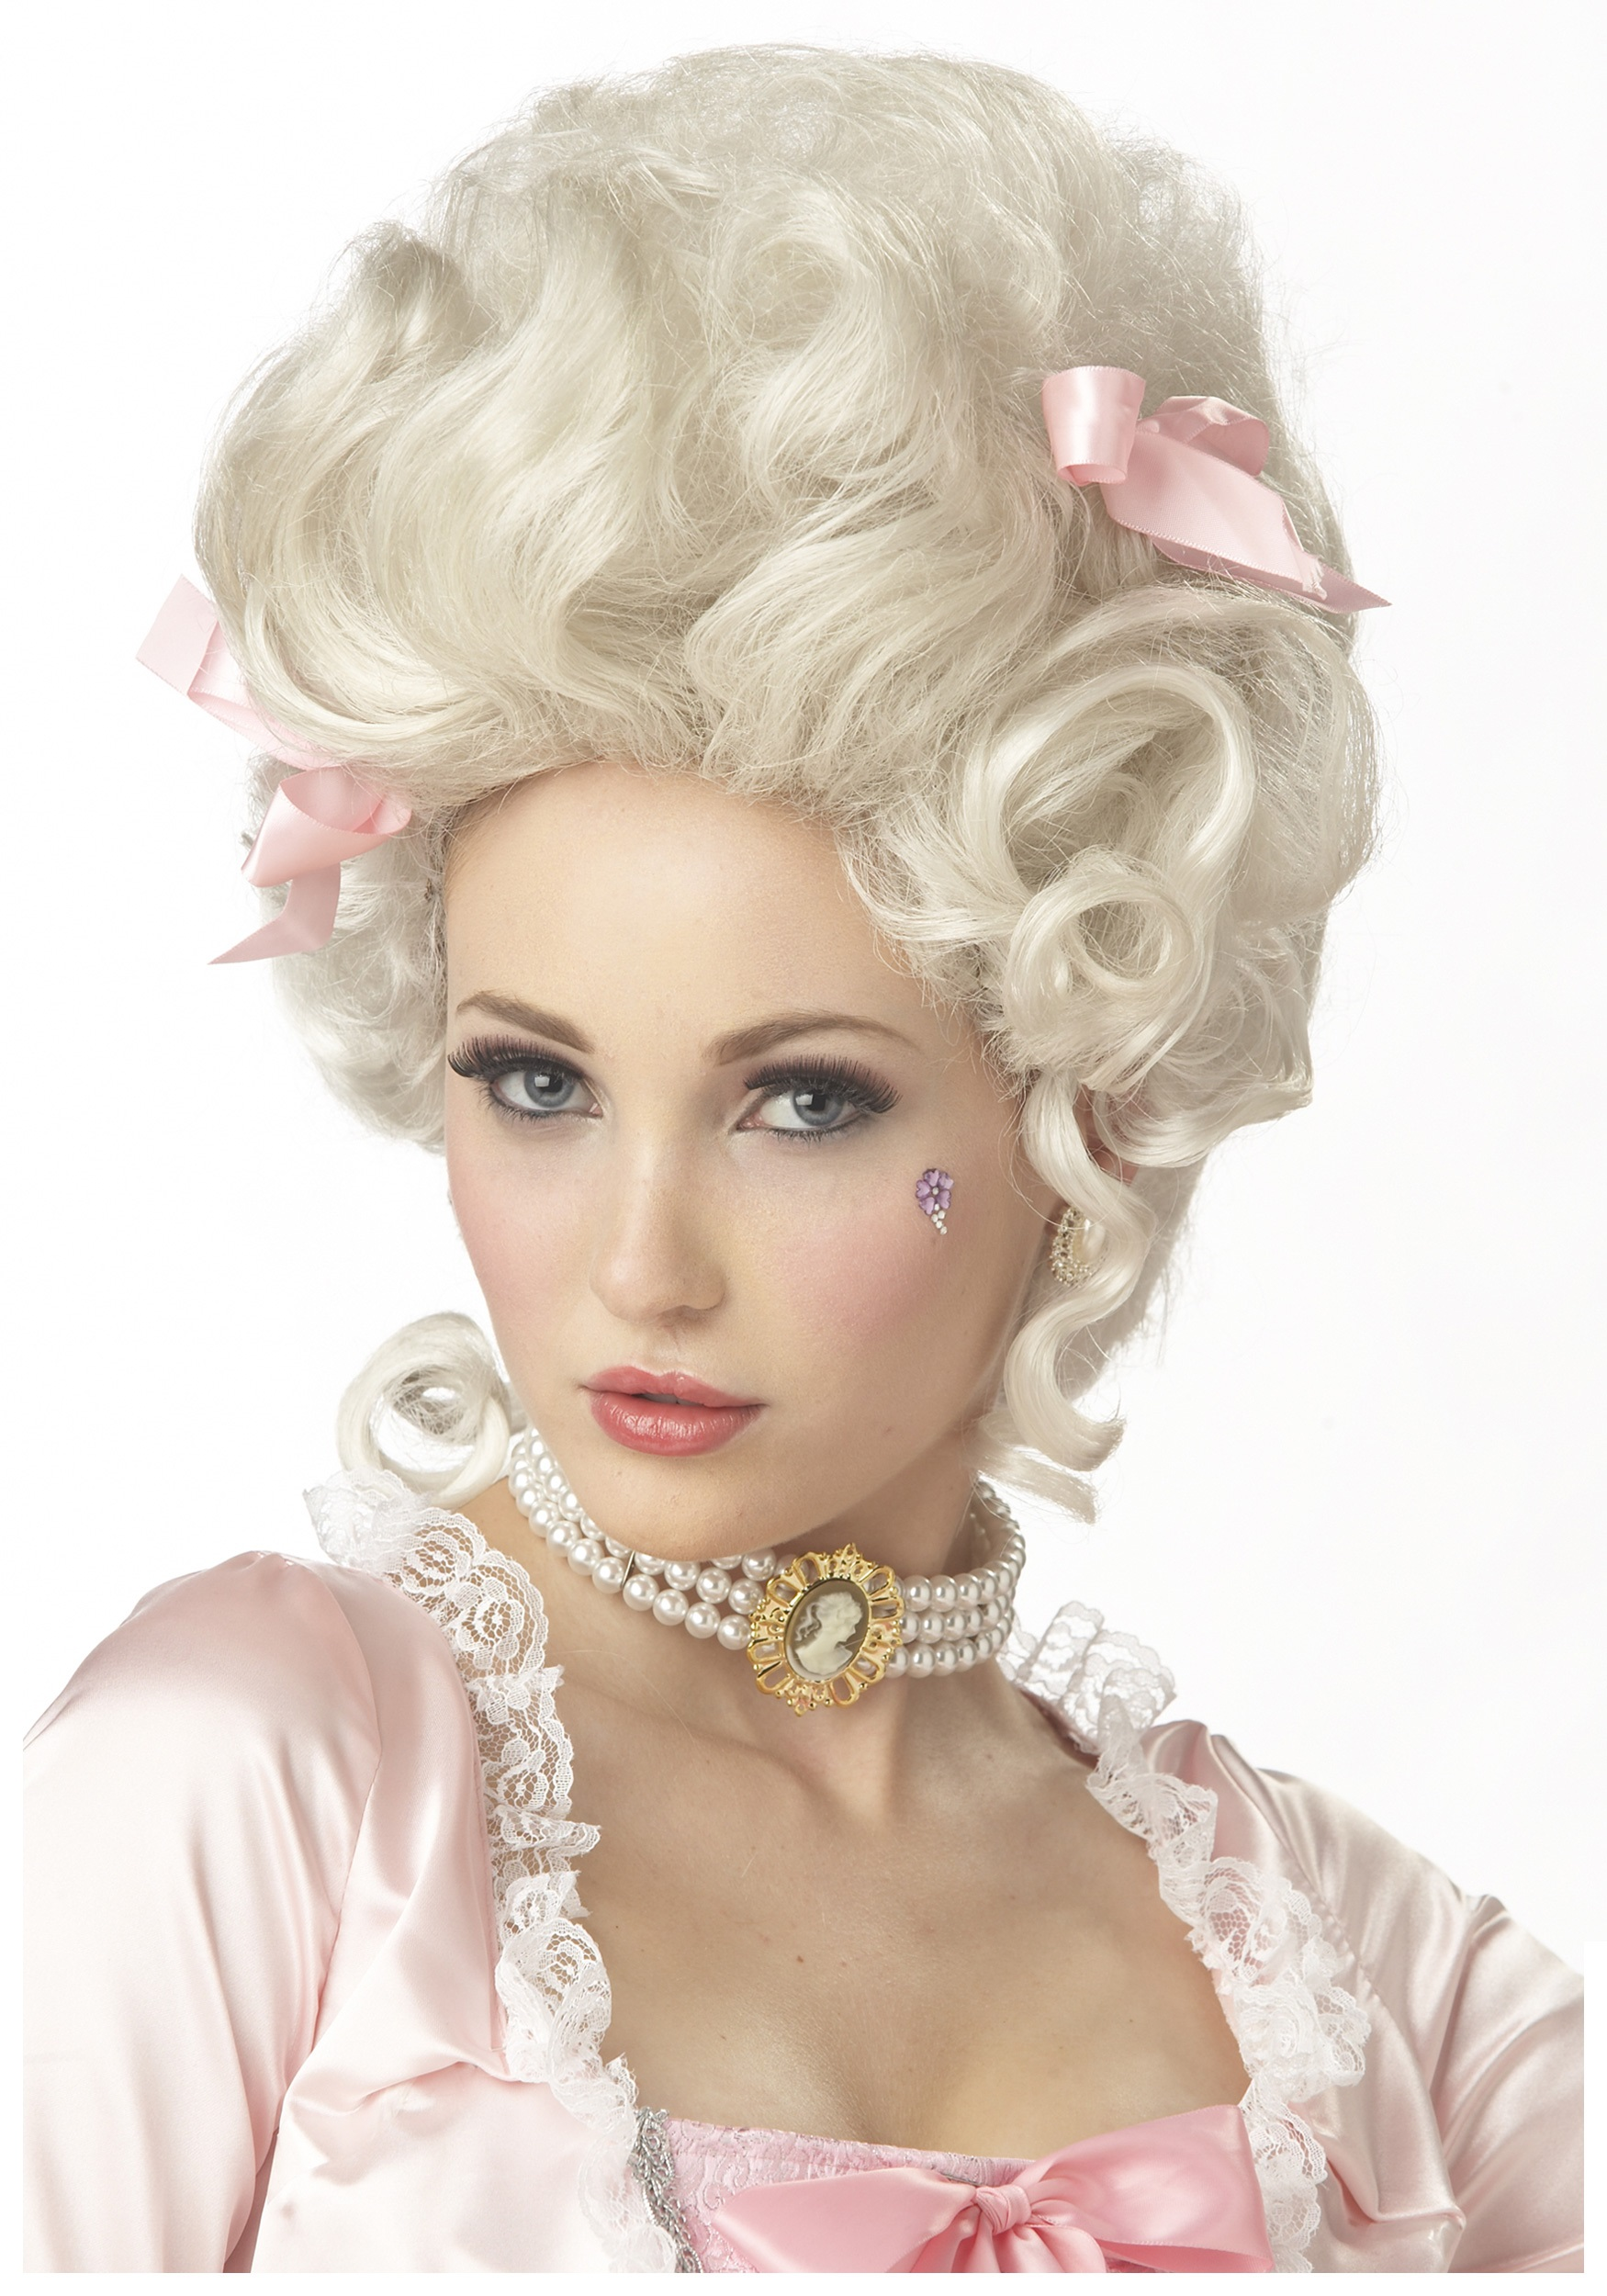 Marie Antoinette Wig For Adults 7dab8a75a